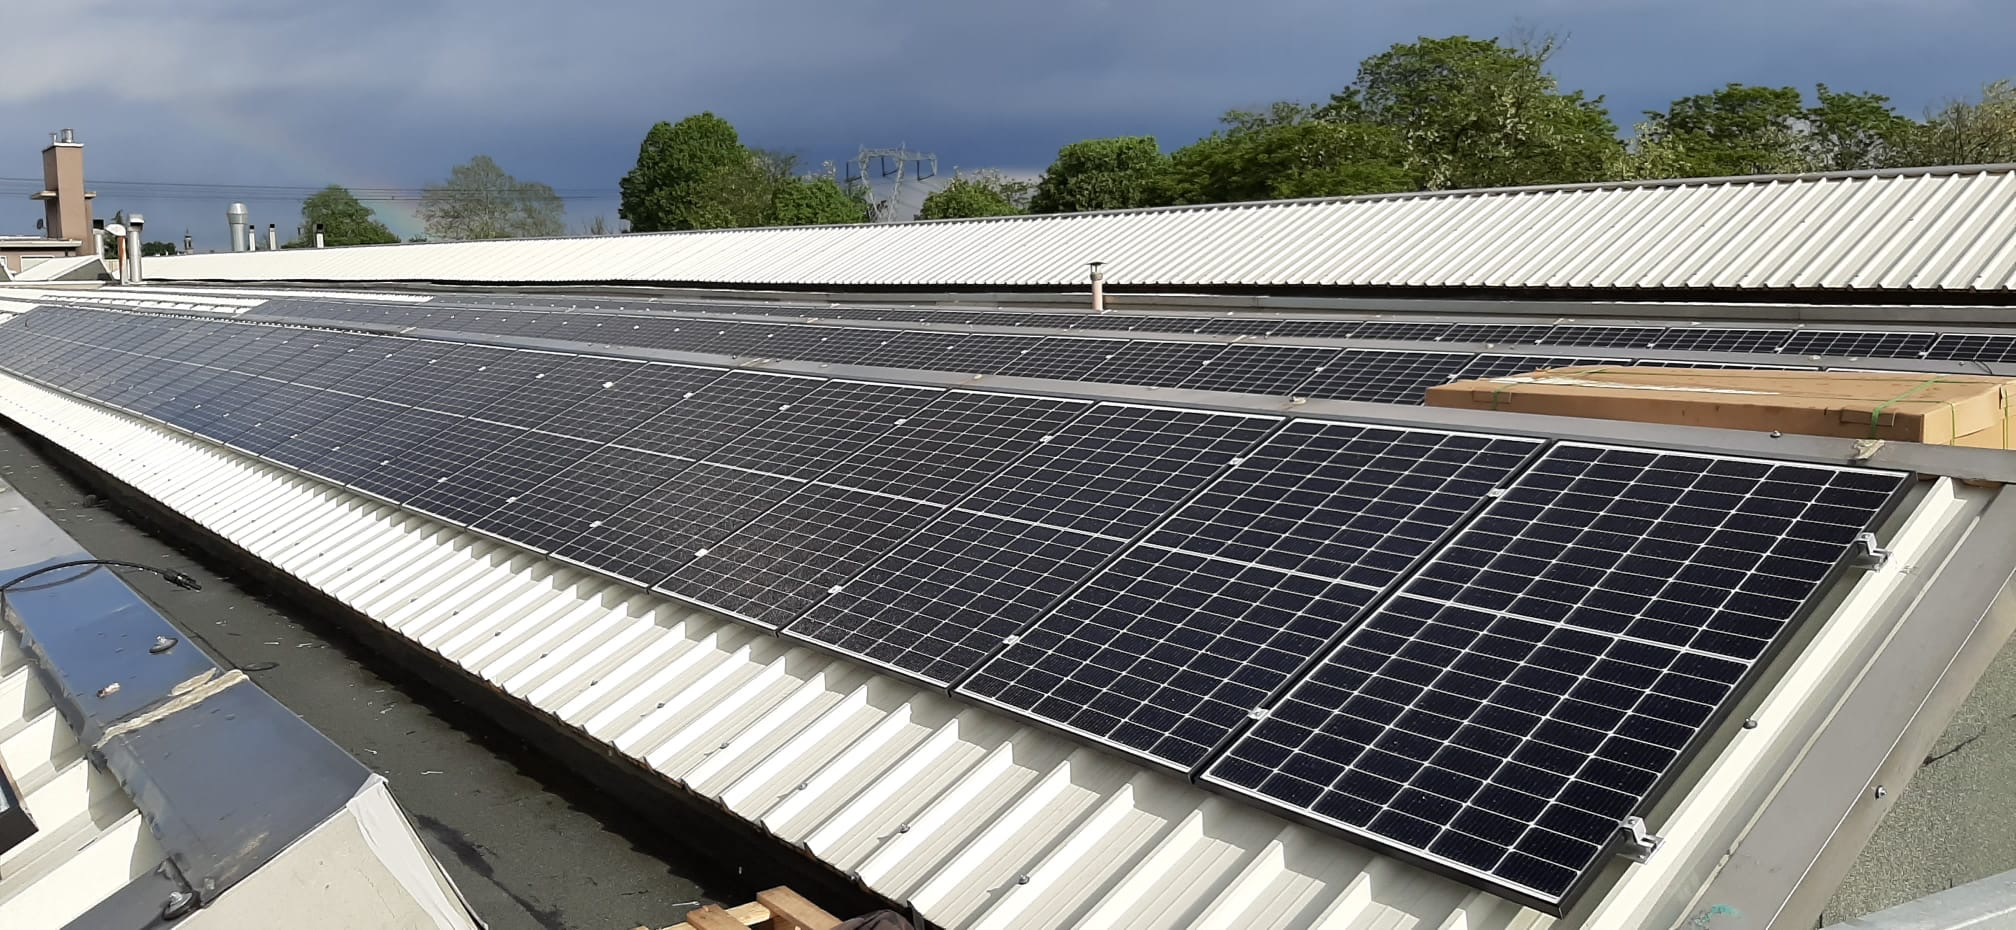 New photovoltaic system for energy saving